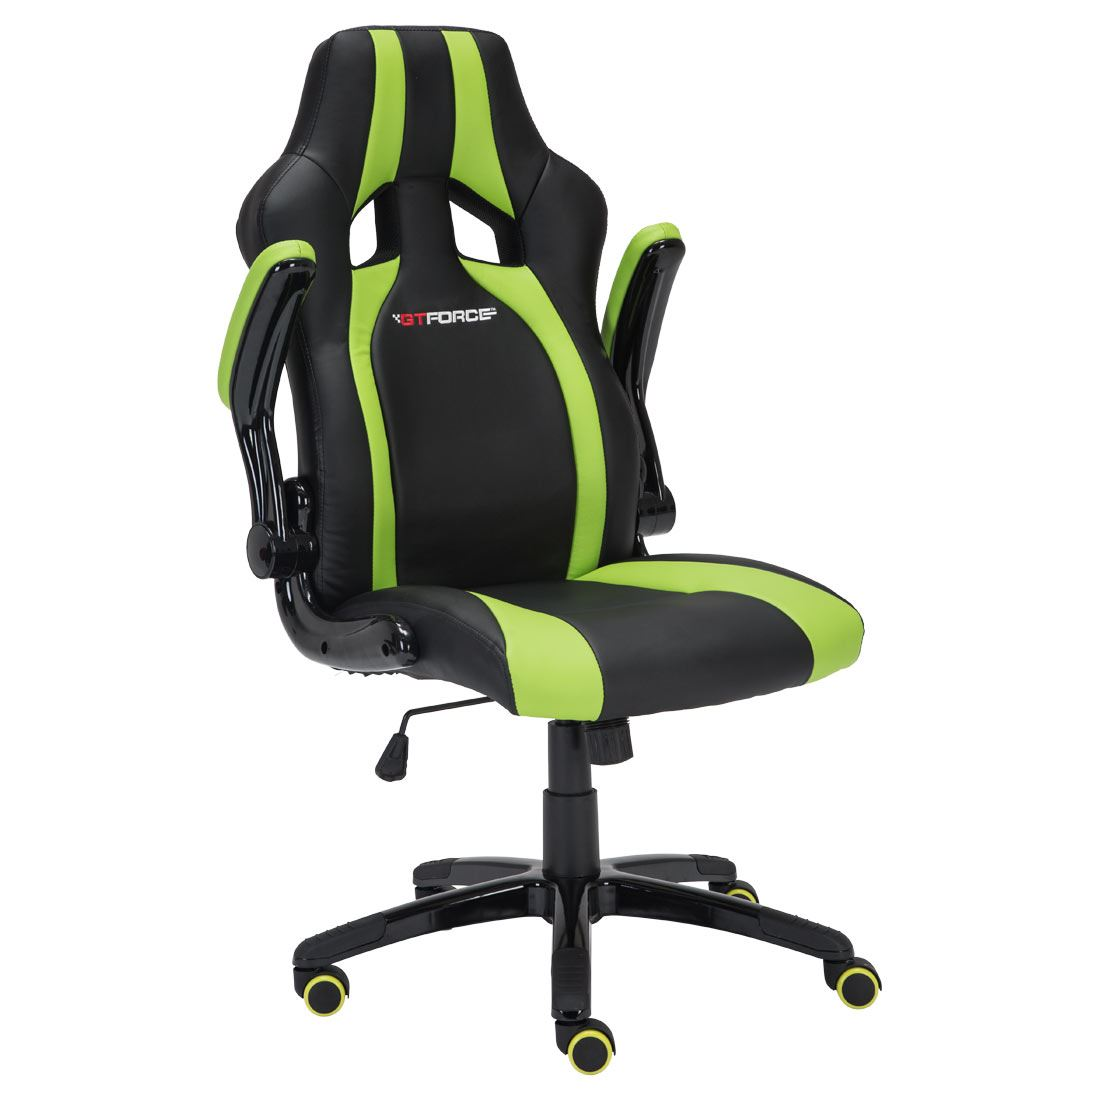 green computer chair brown leather wingback gtforce roadster 2 black sport racing car office